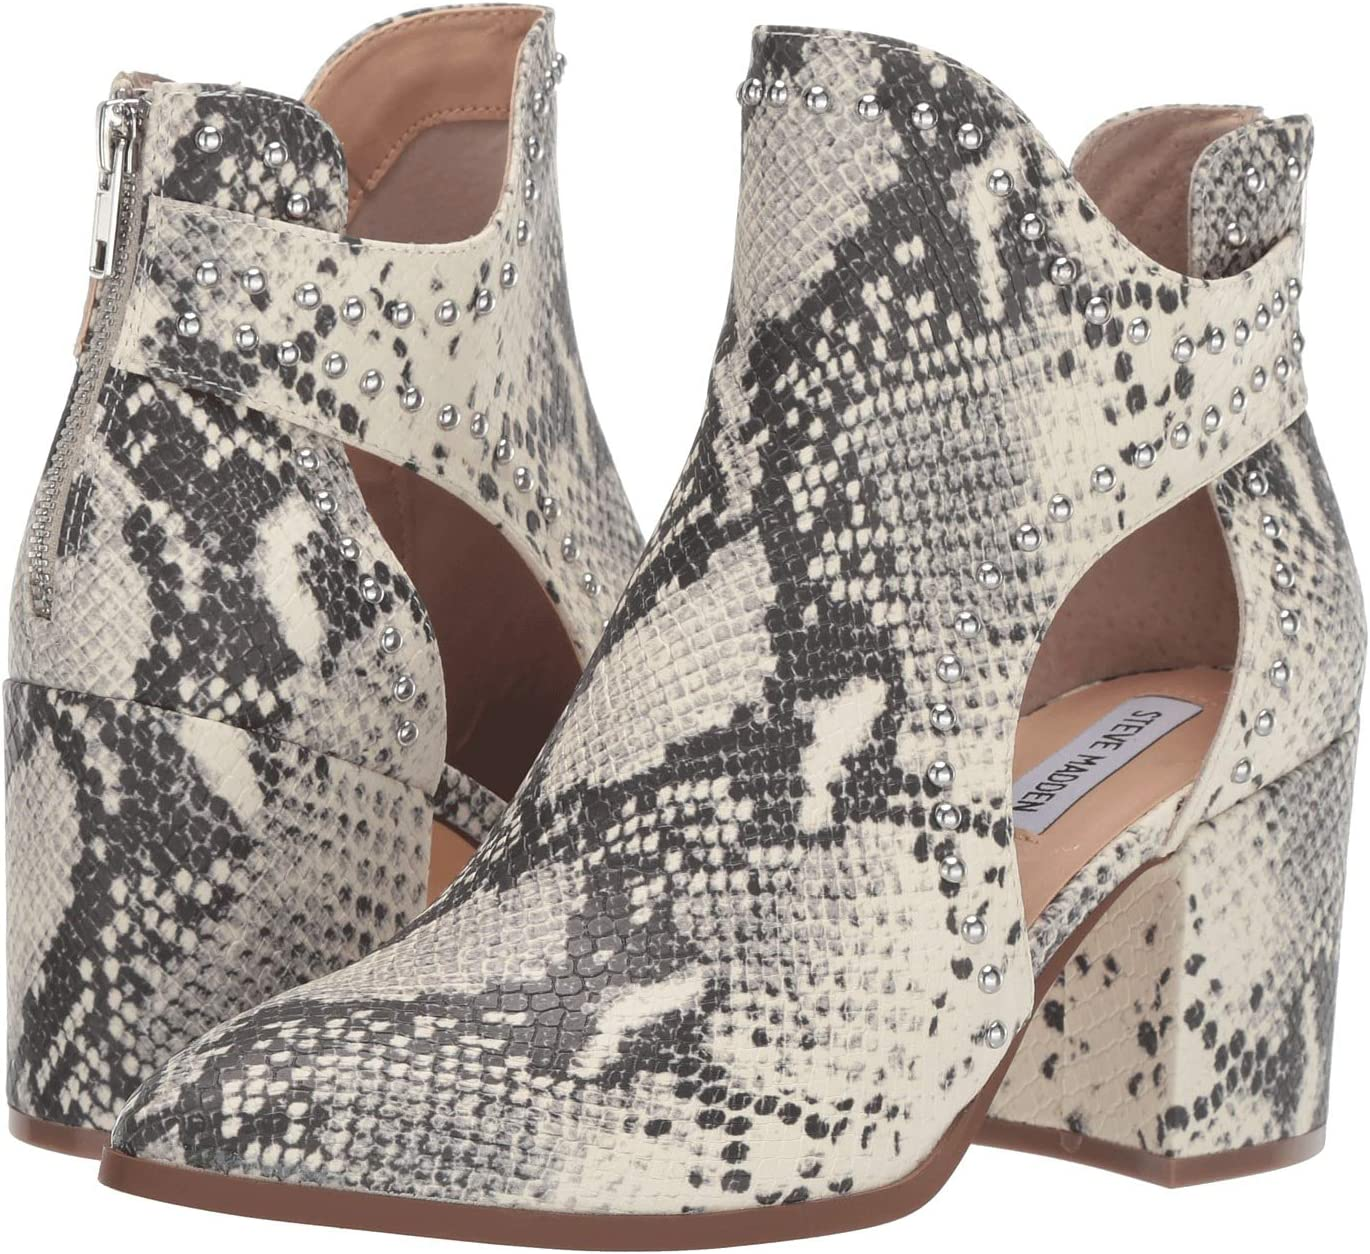 f4094c26c54 Steve Madden Shoes, Boots, Sandals | Zappos.com